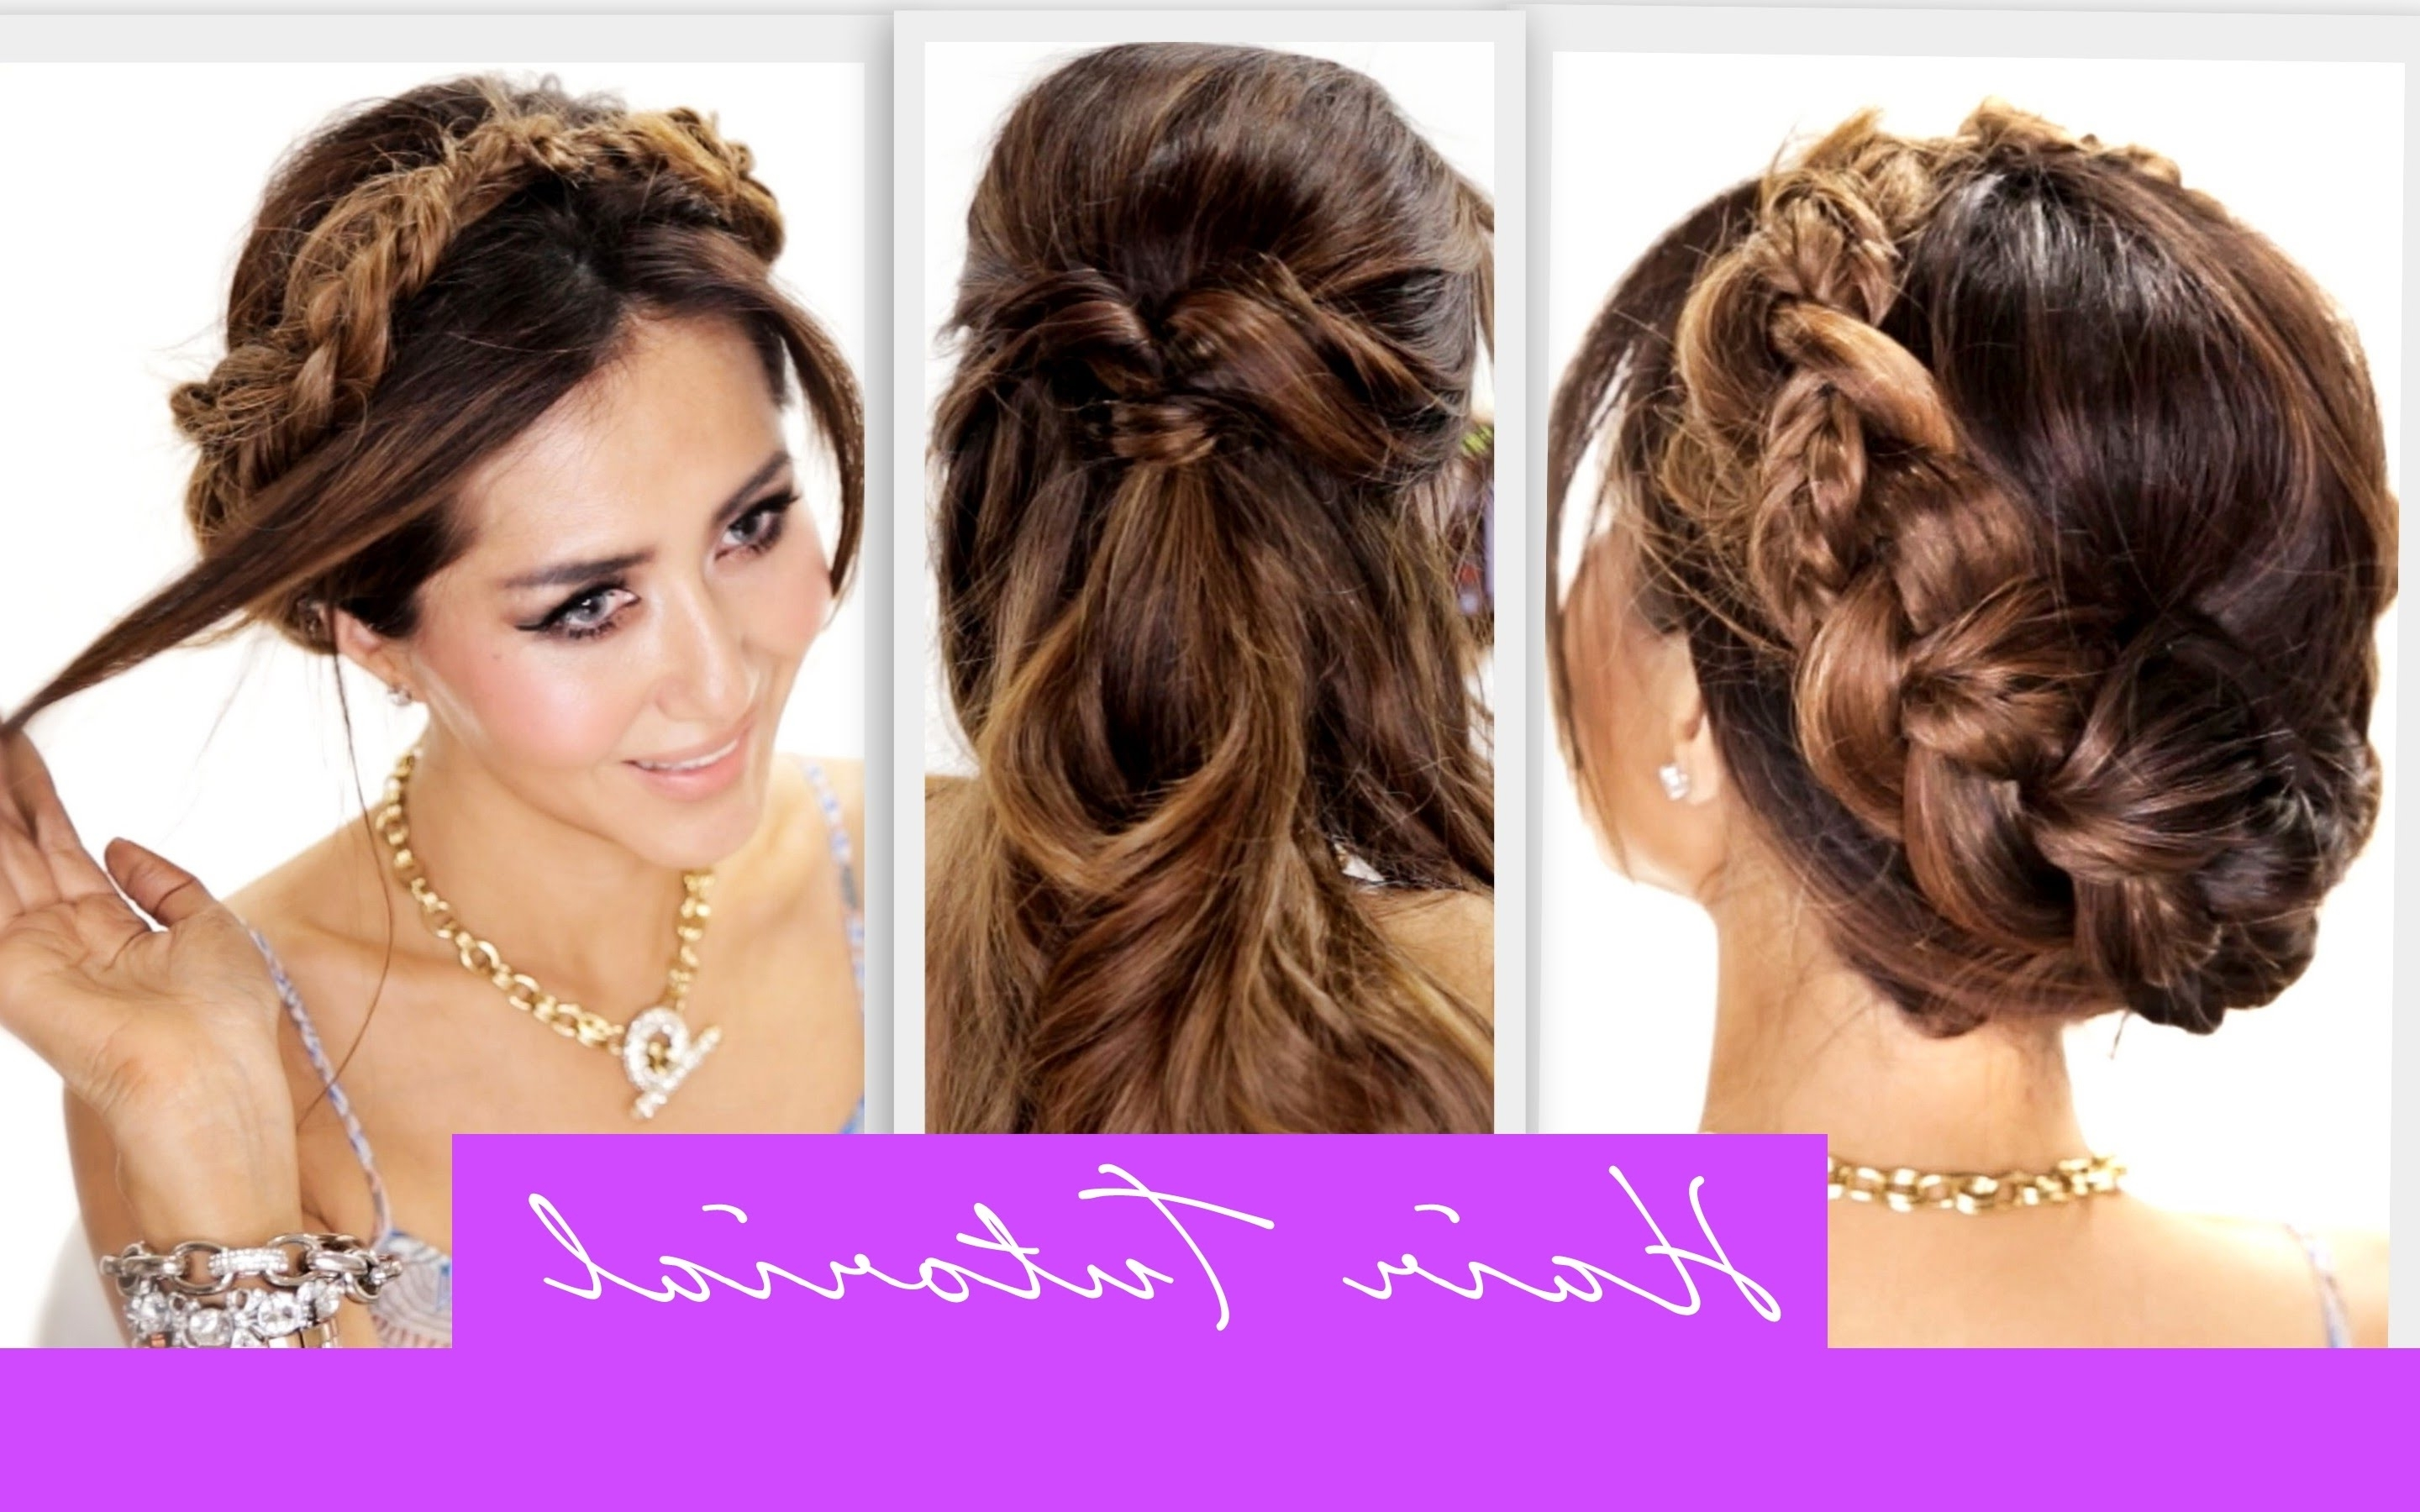 Cute Braids Hairstyle Regarding Favorite Hidden Braid Hairstyles (View 7 of 20)